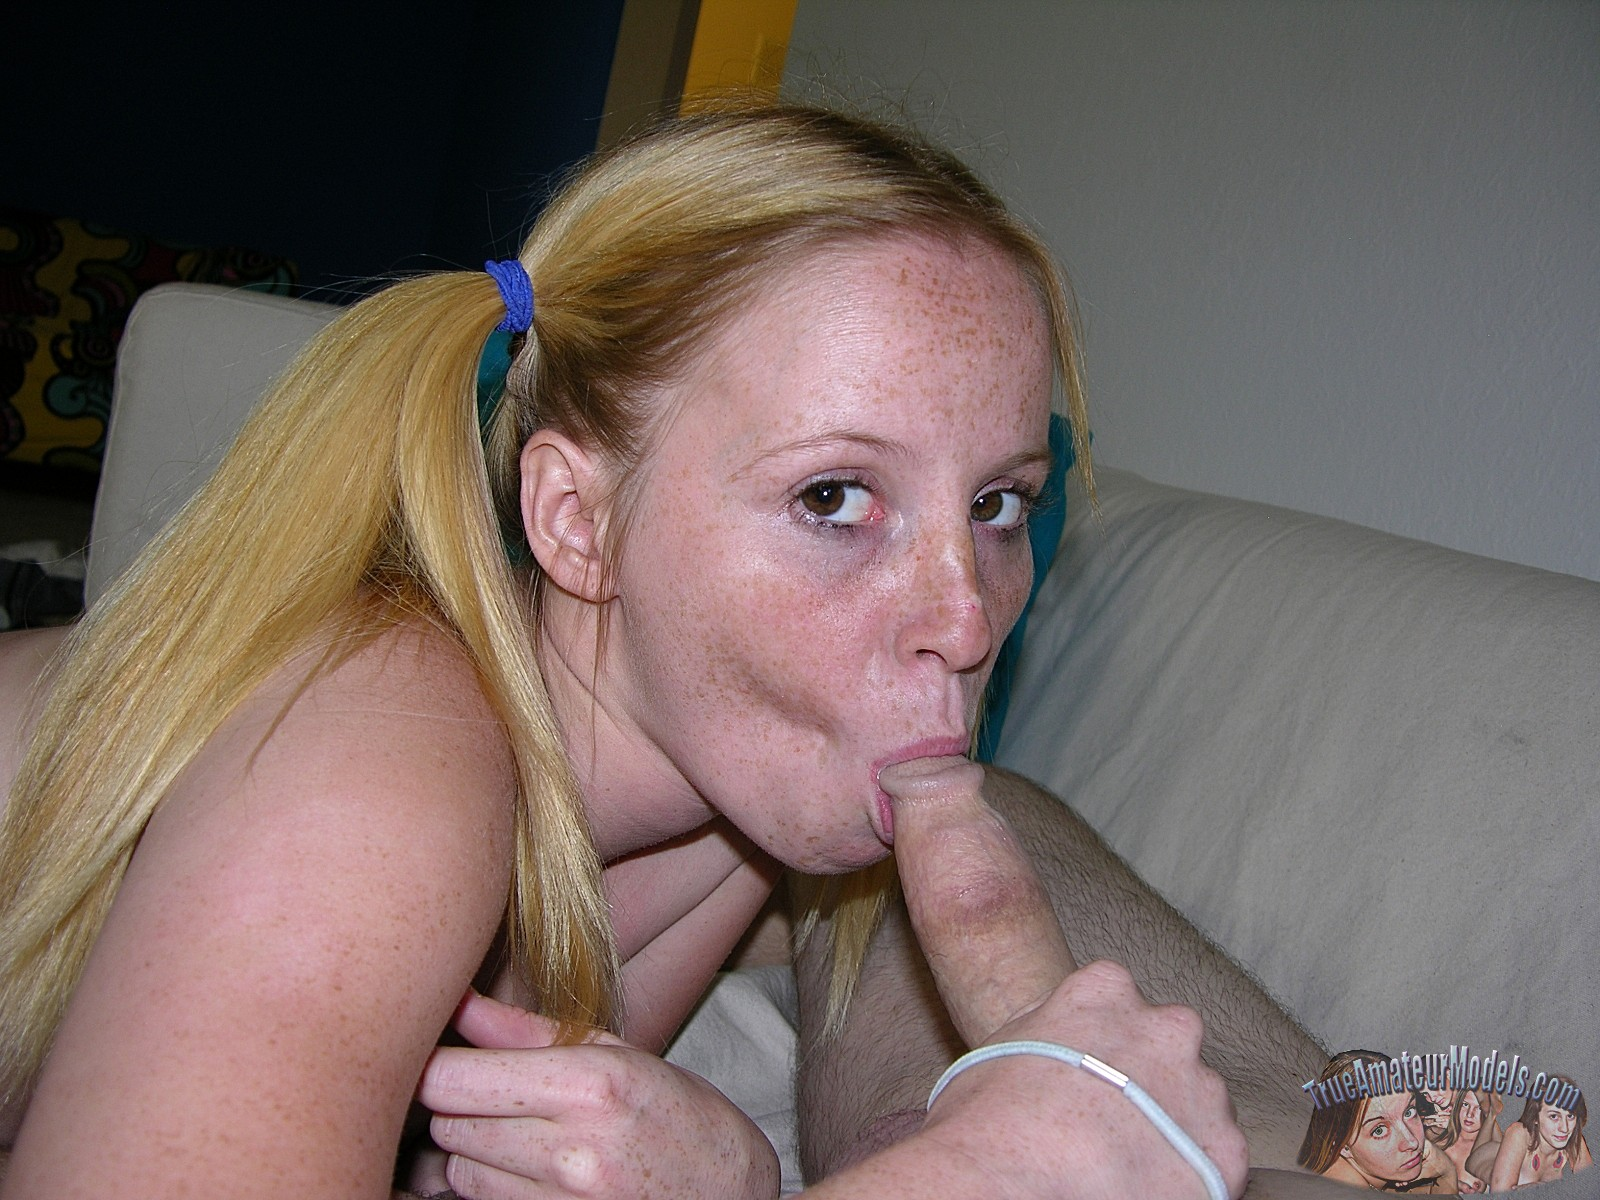 image Latina wife riding oldman in hotel room